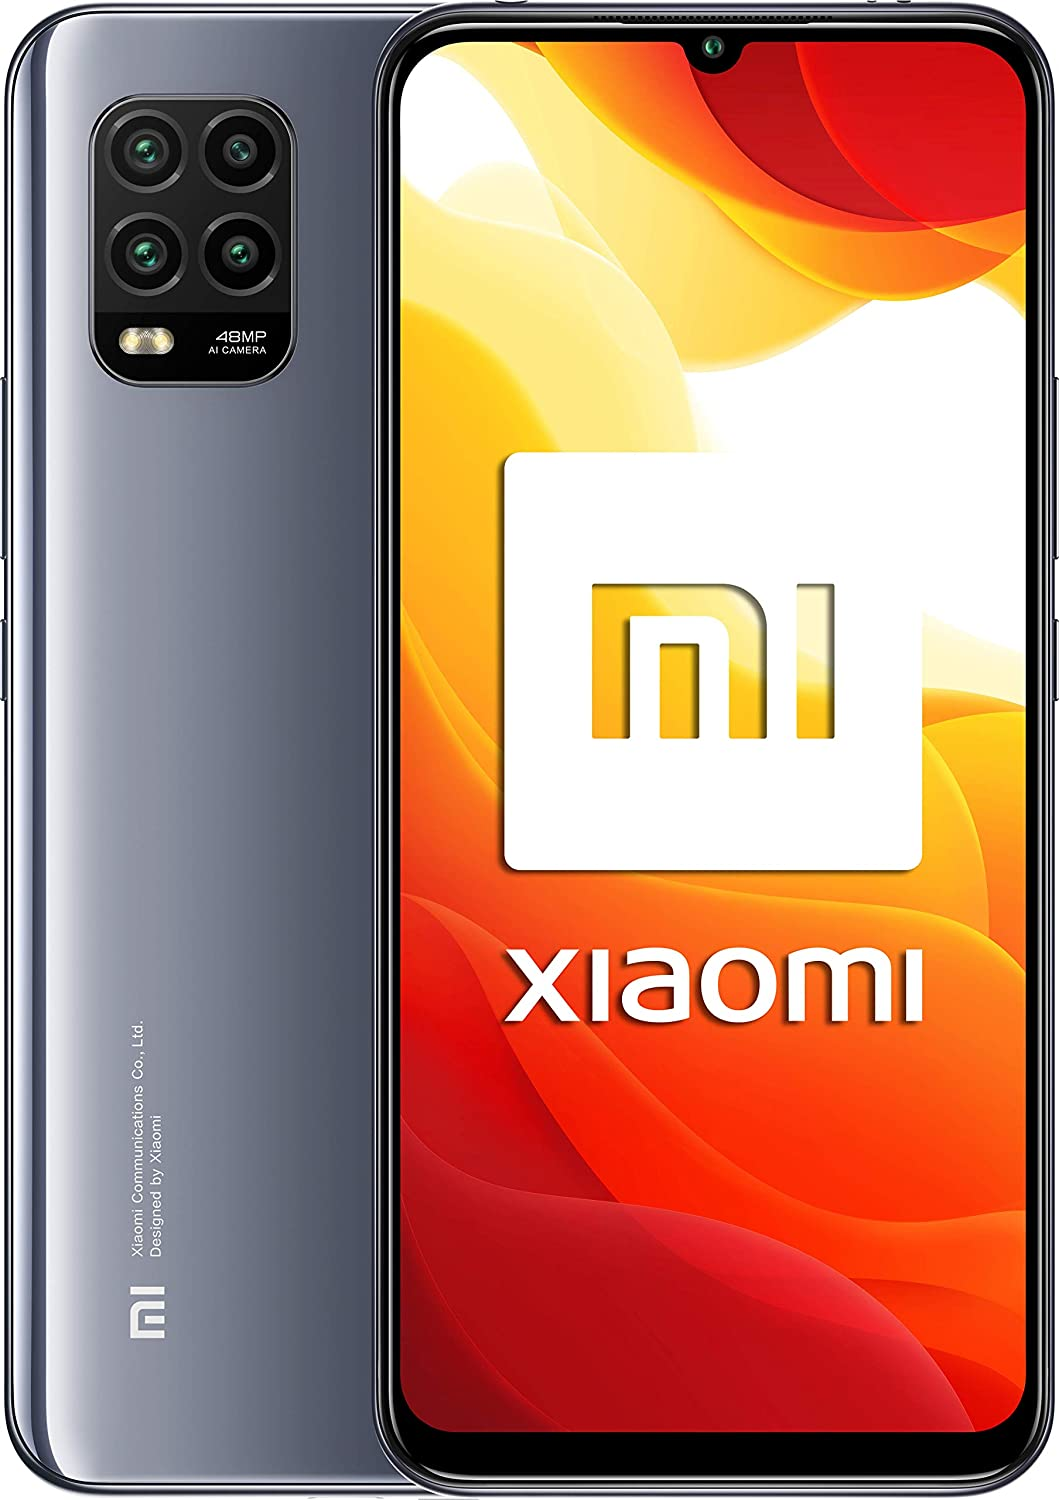 """Xiaomi Mi 10 Lite 5G (6.57 """"AMOLED Screen, TrueColor, 6GB + 128GB, 48MP Camera, Snapdragon 765G, 4160mah with 20W Charge, Android 10) Gray"""